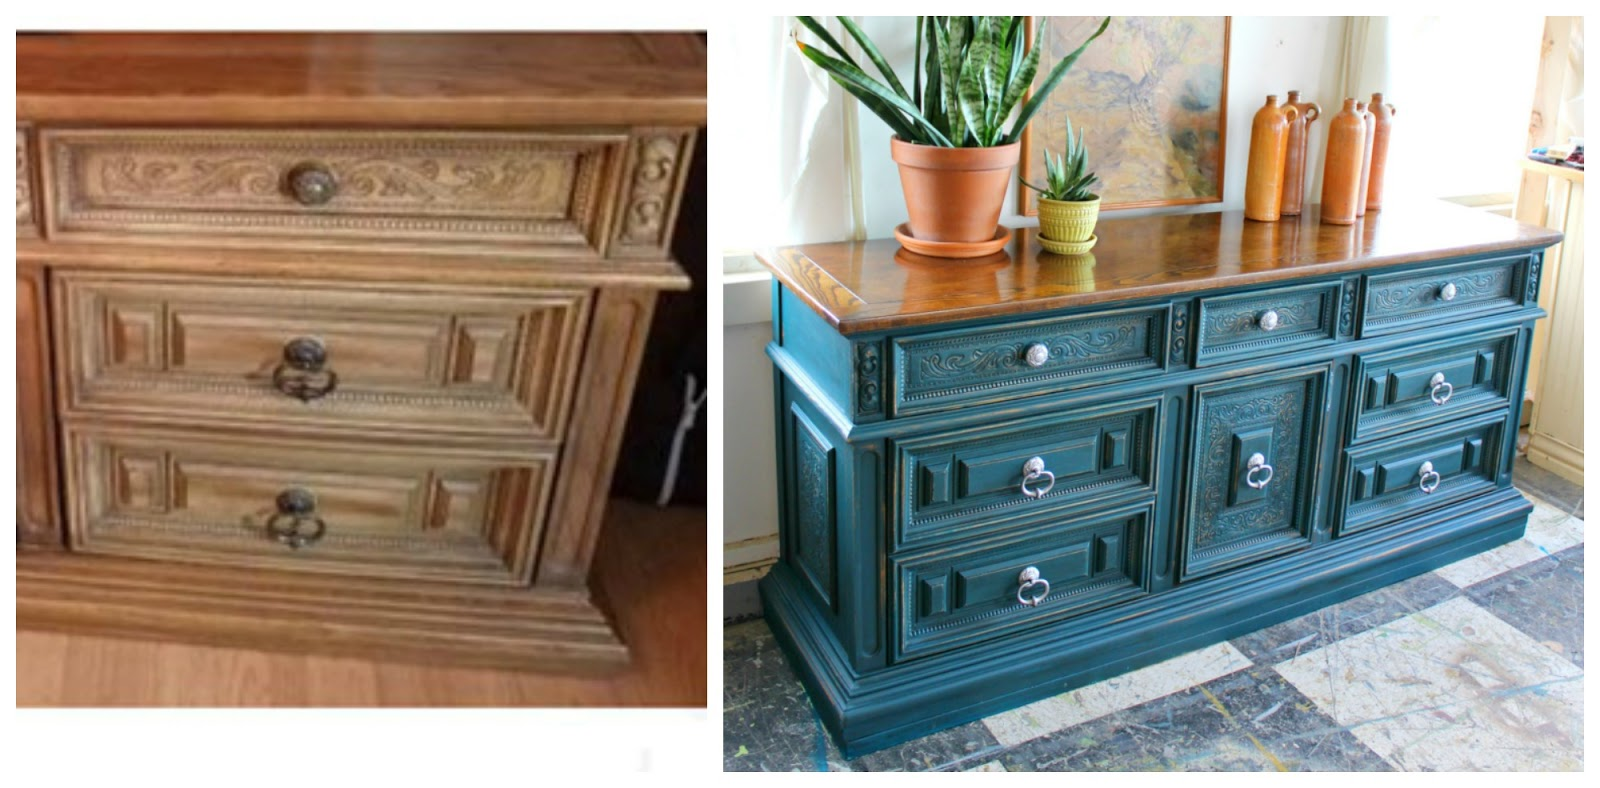 Heir and Space: A Vintage Oak Buffet in Tuscan Teal